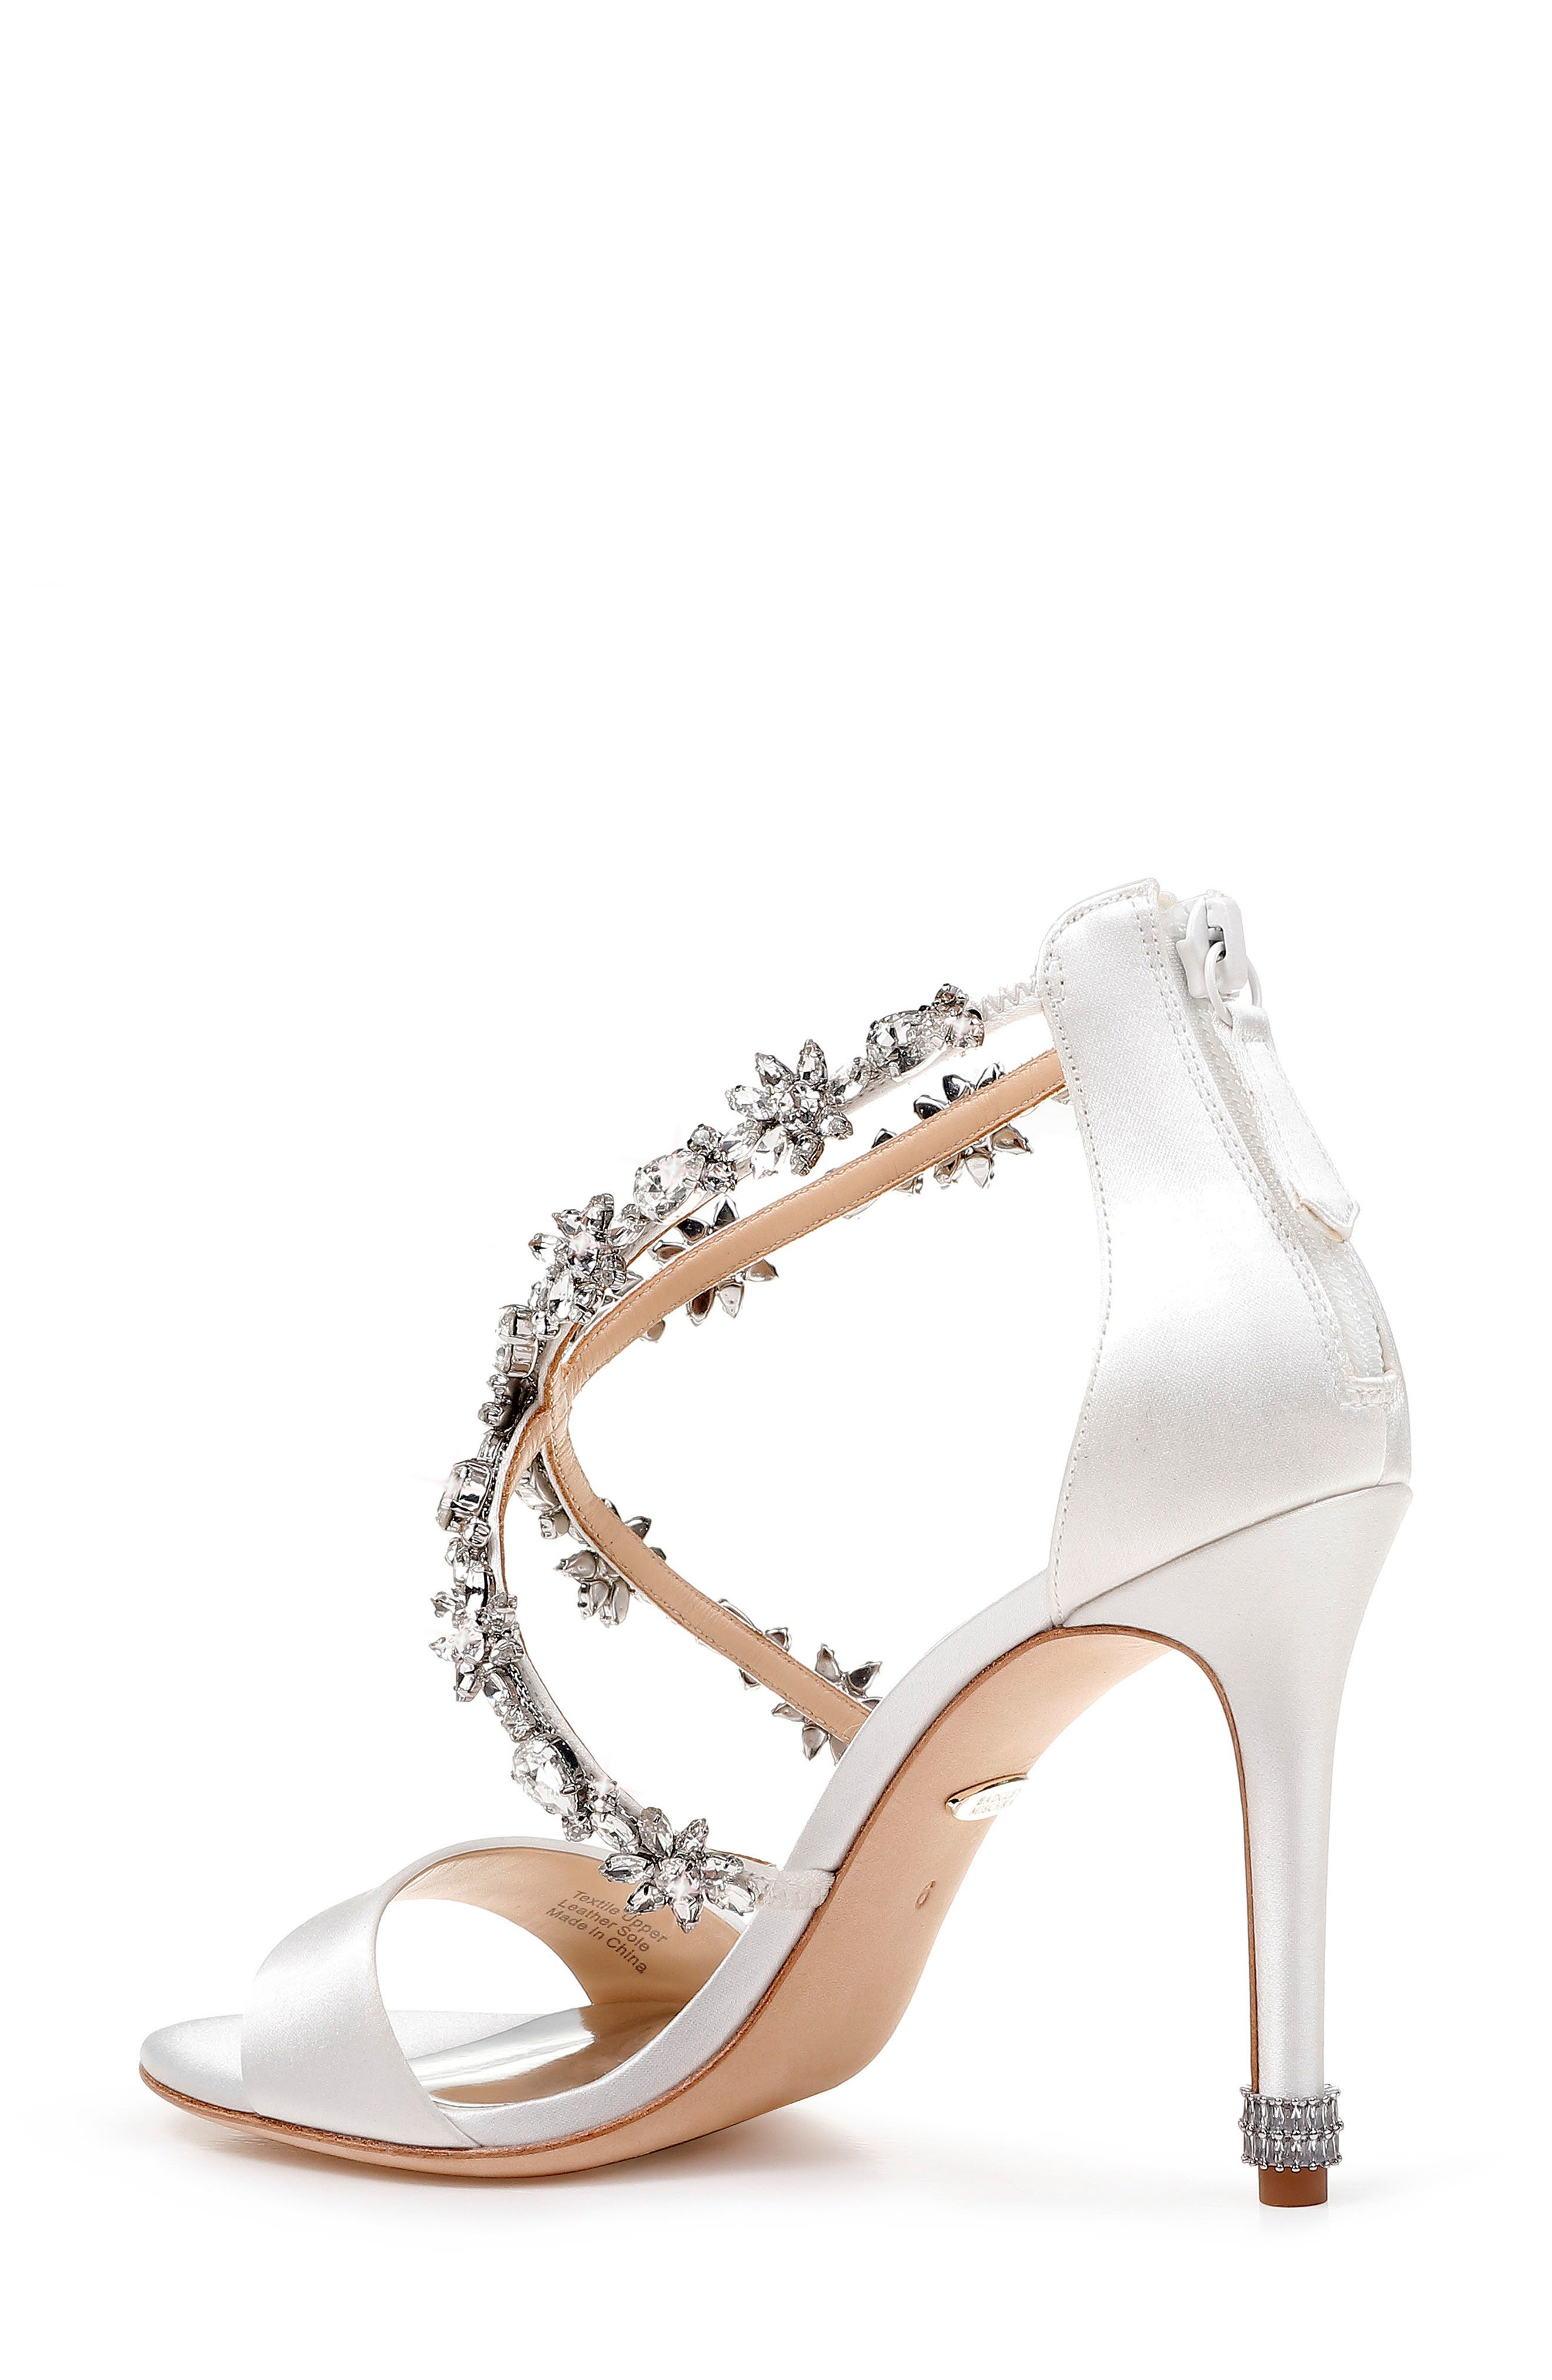 Crystal Embellished Sandal,                             Alternate thumbnail 2, color,                             SOFT WHITE SATIN